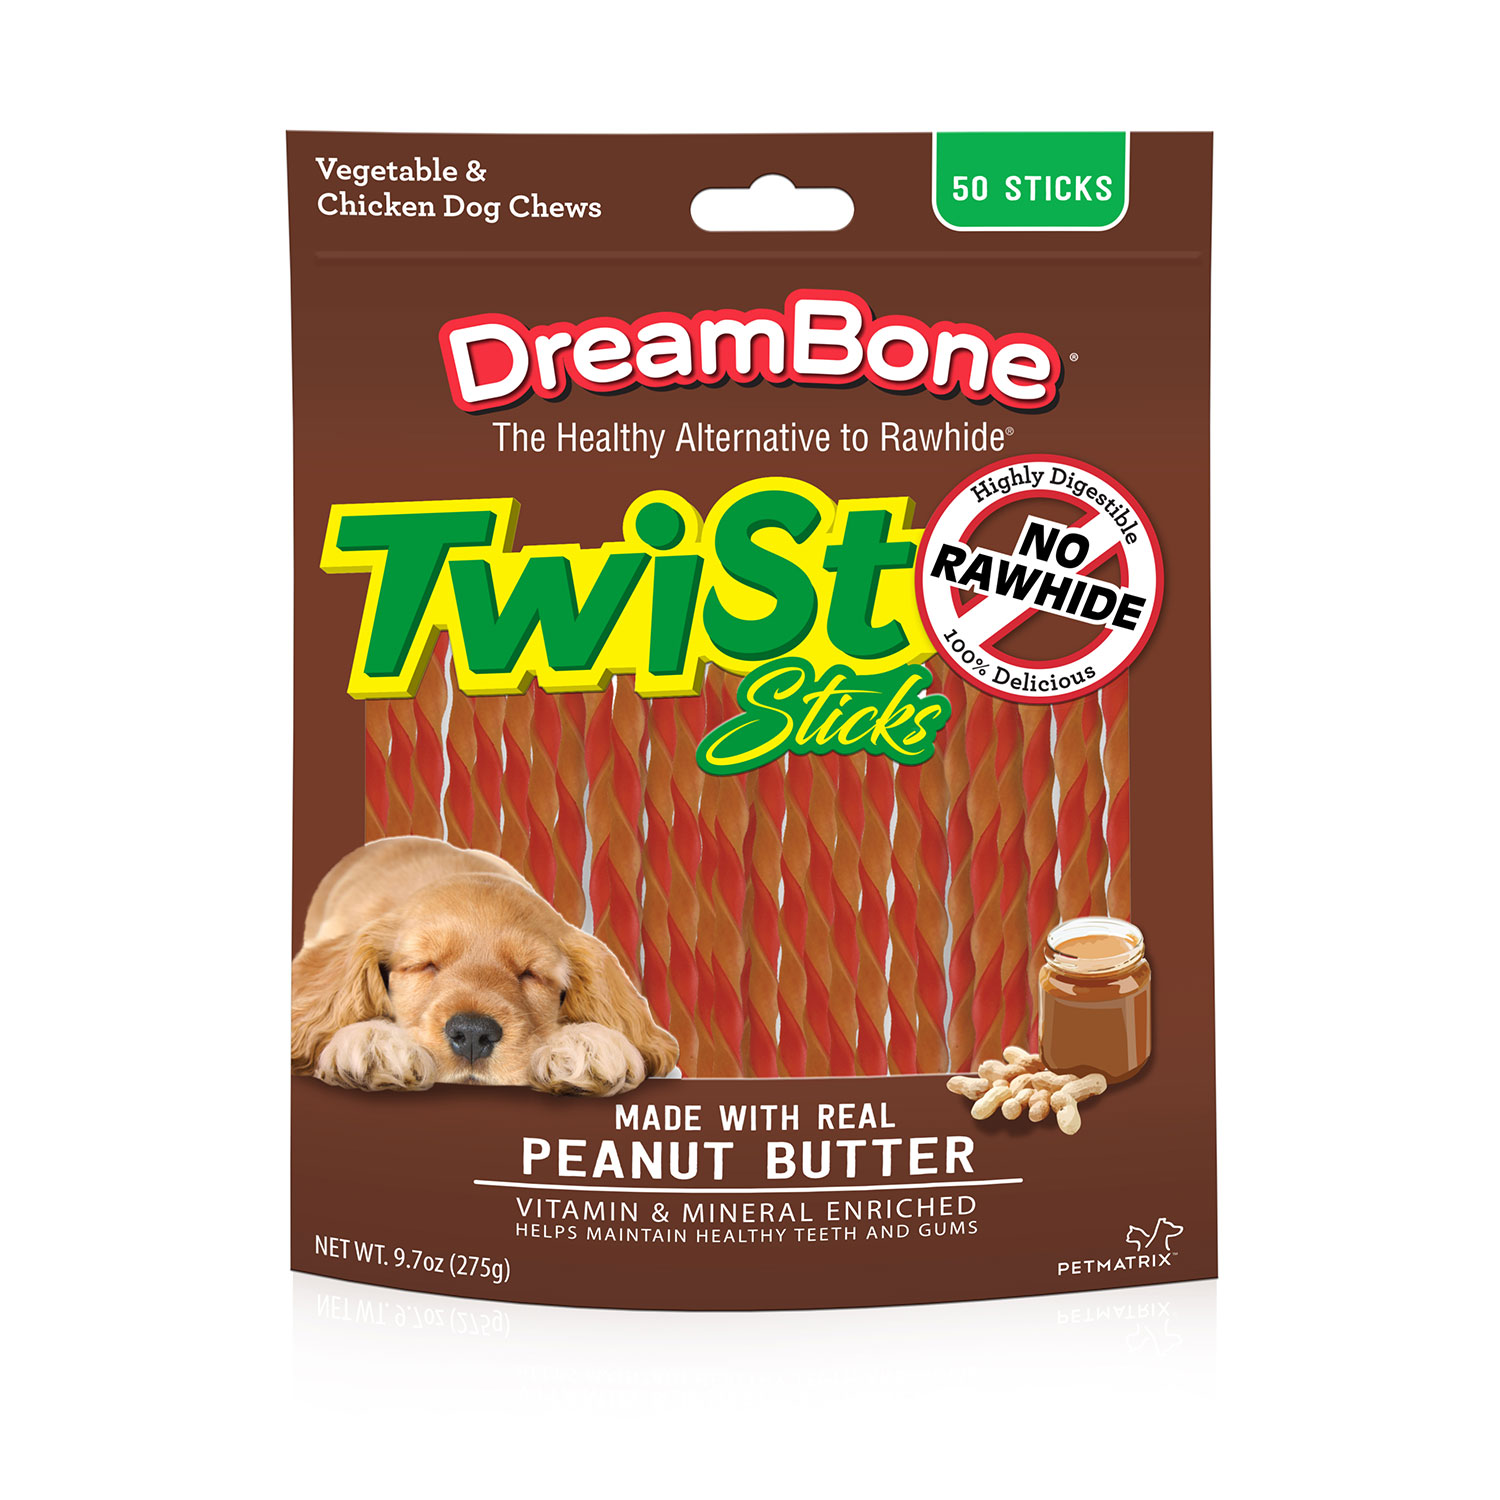 DreamBone Peanut Butter Twist Sticks Dog Chews, 50-Count